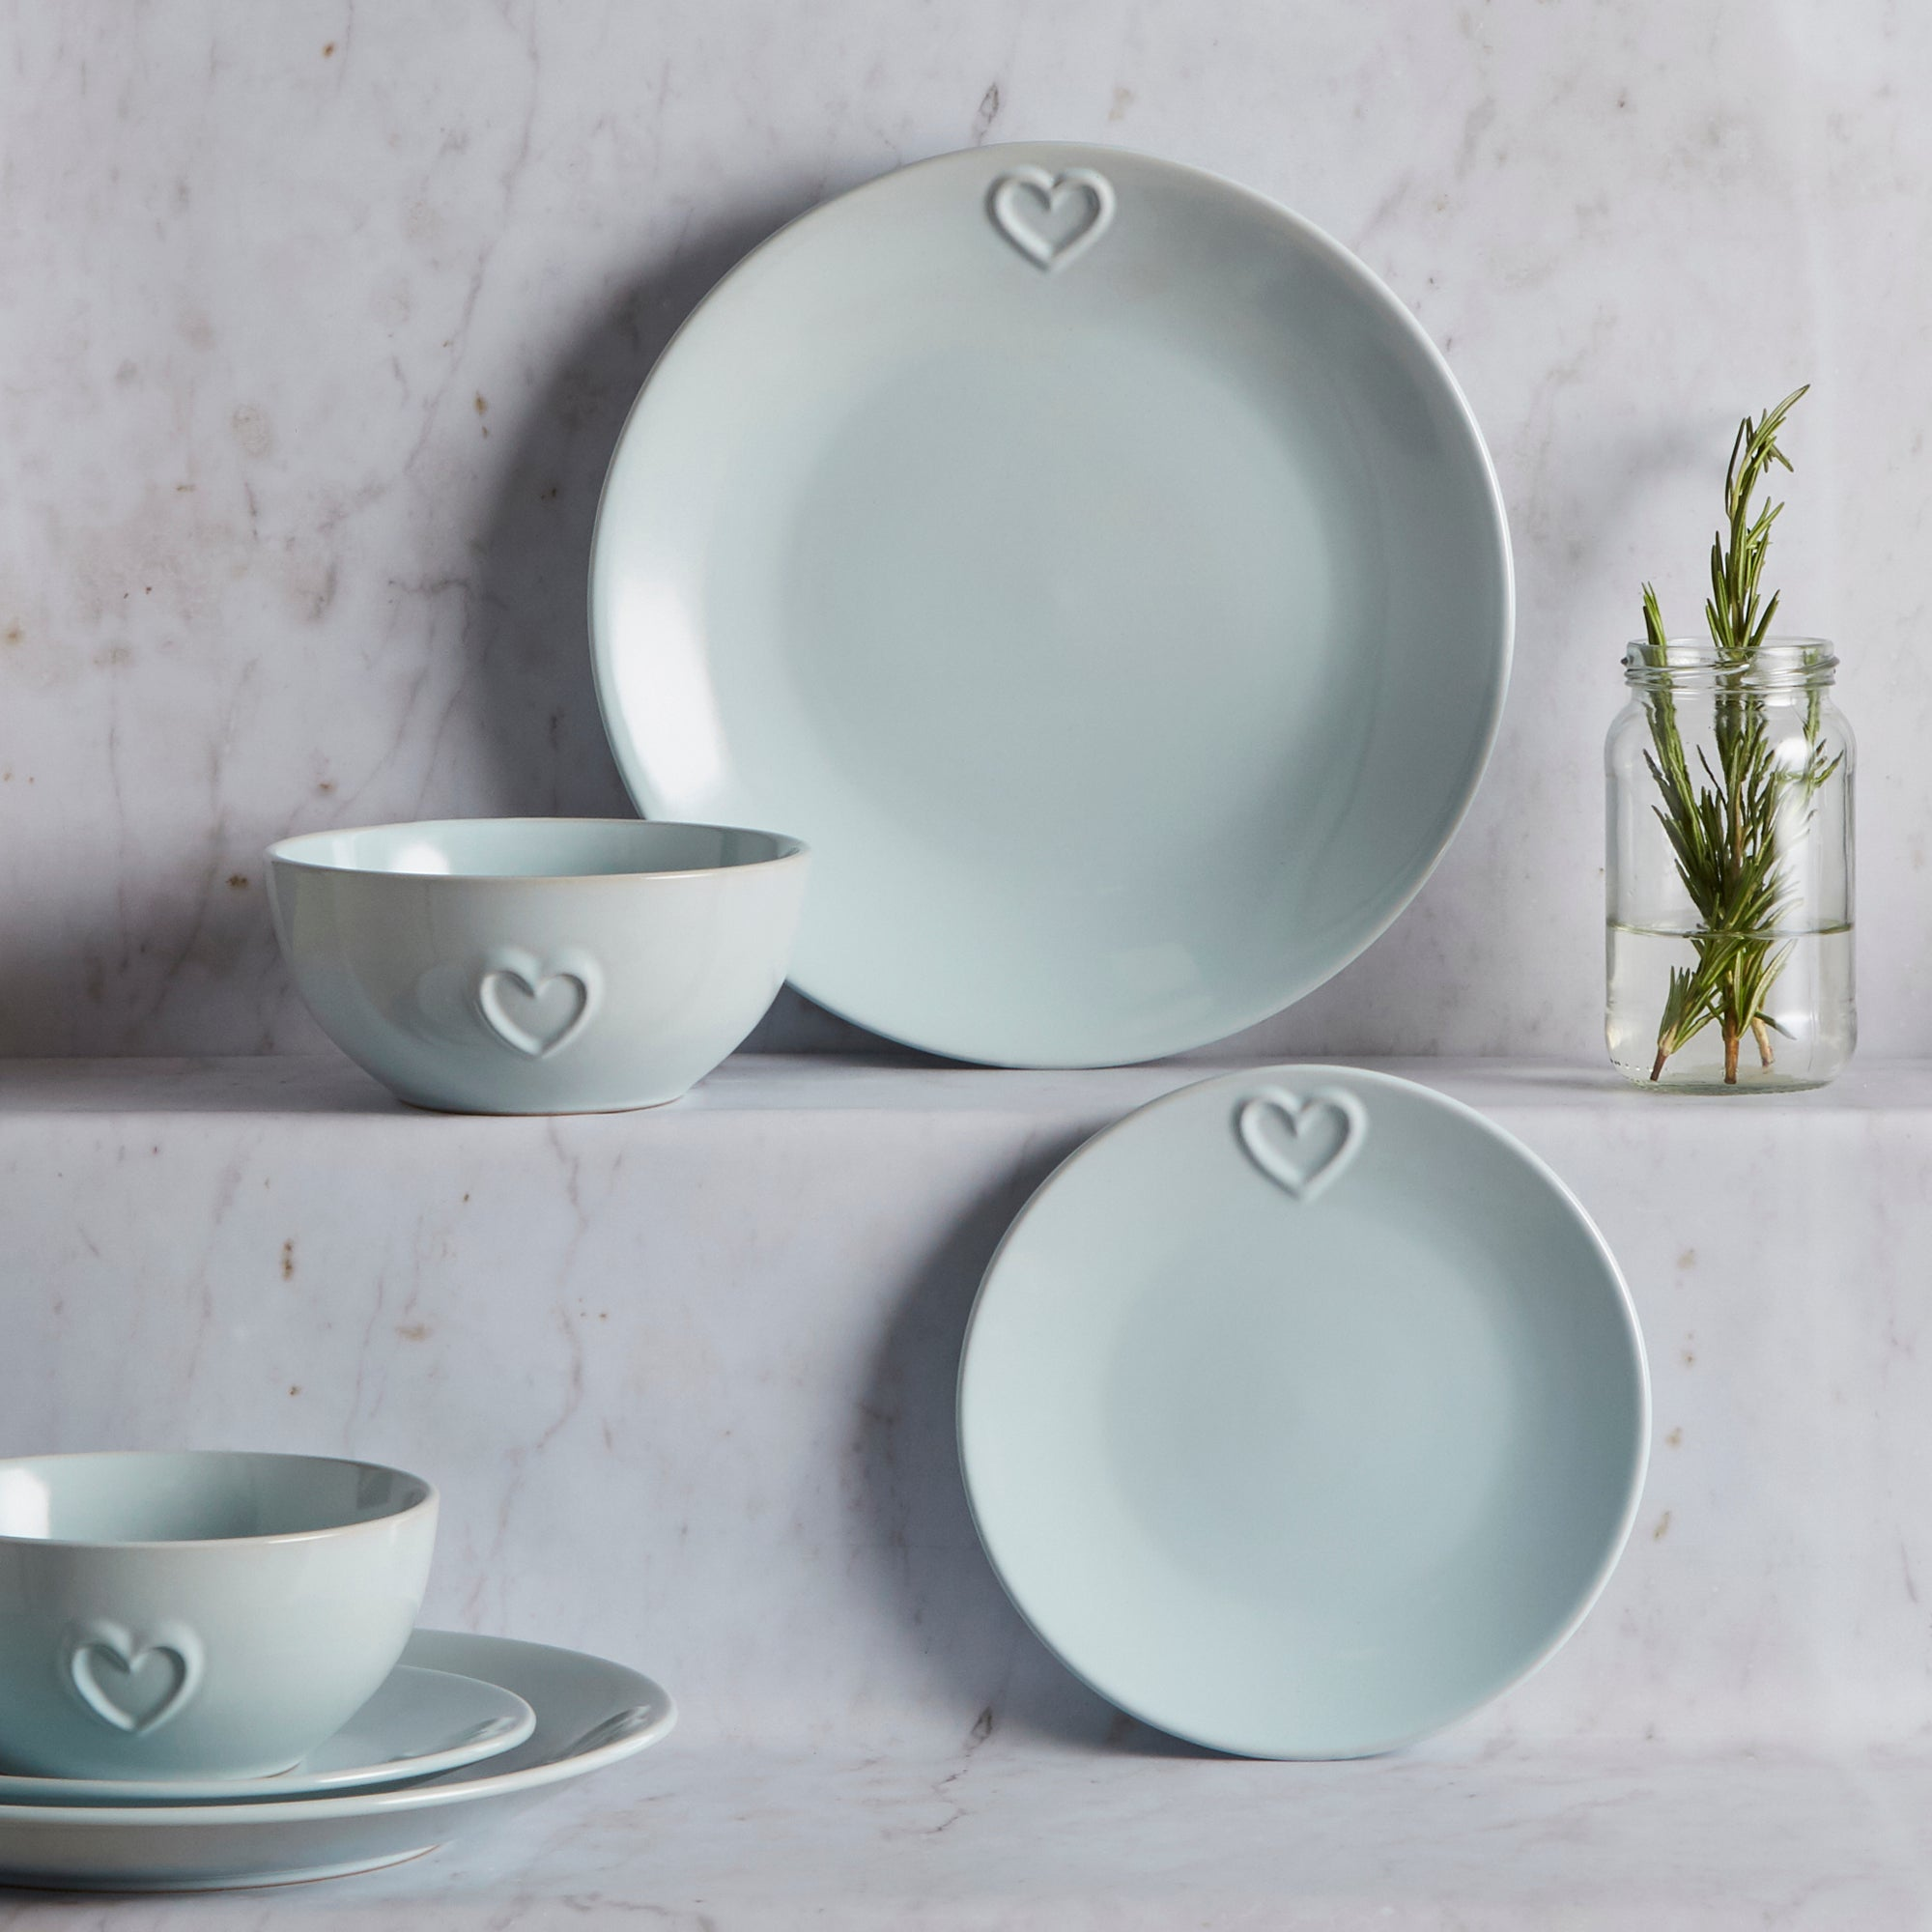 Country Heart DuckEgg 12 Piece Dinner Set Duck Egg Blue